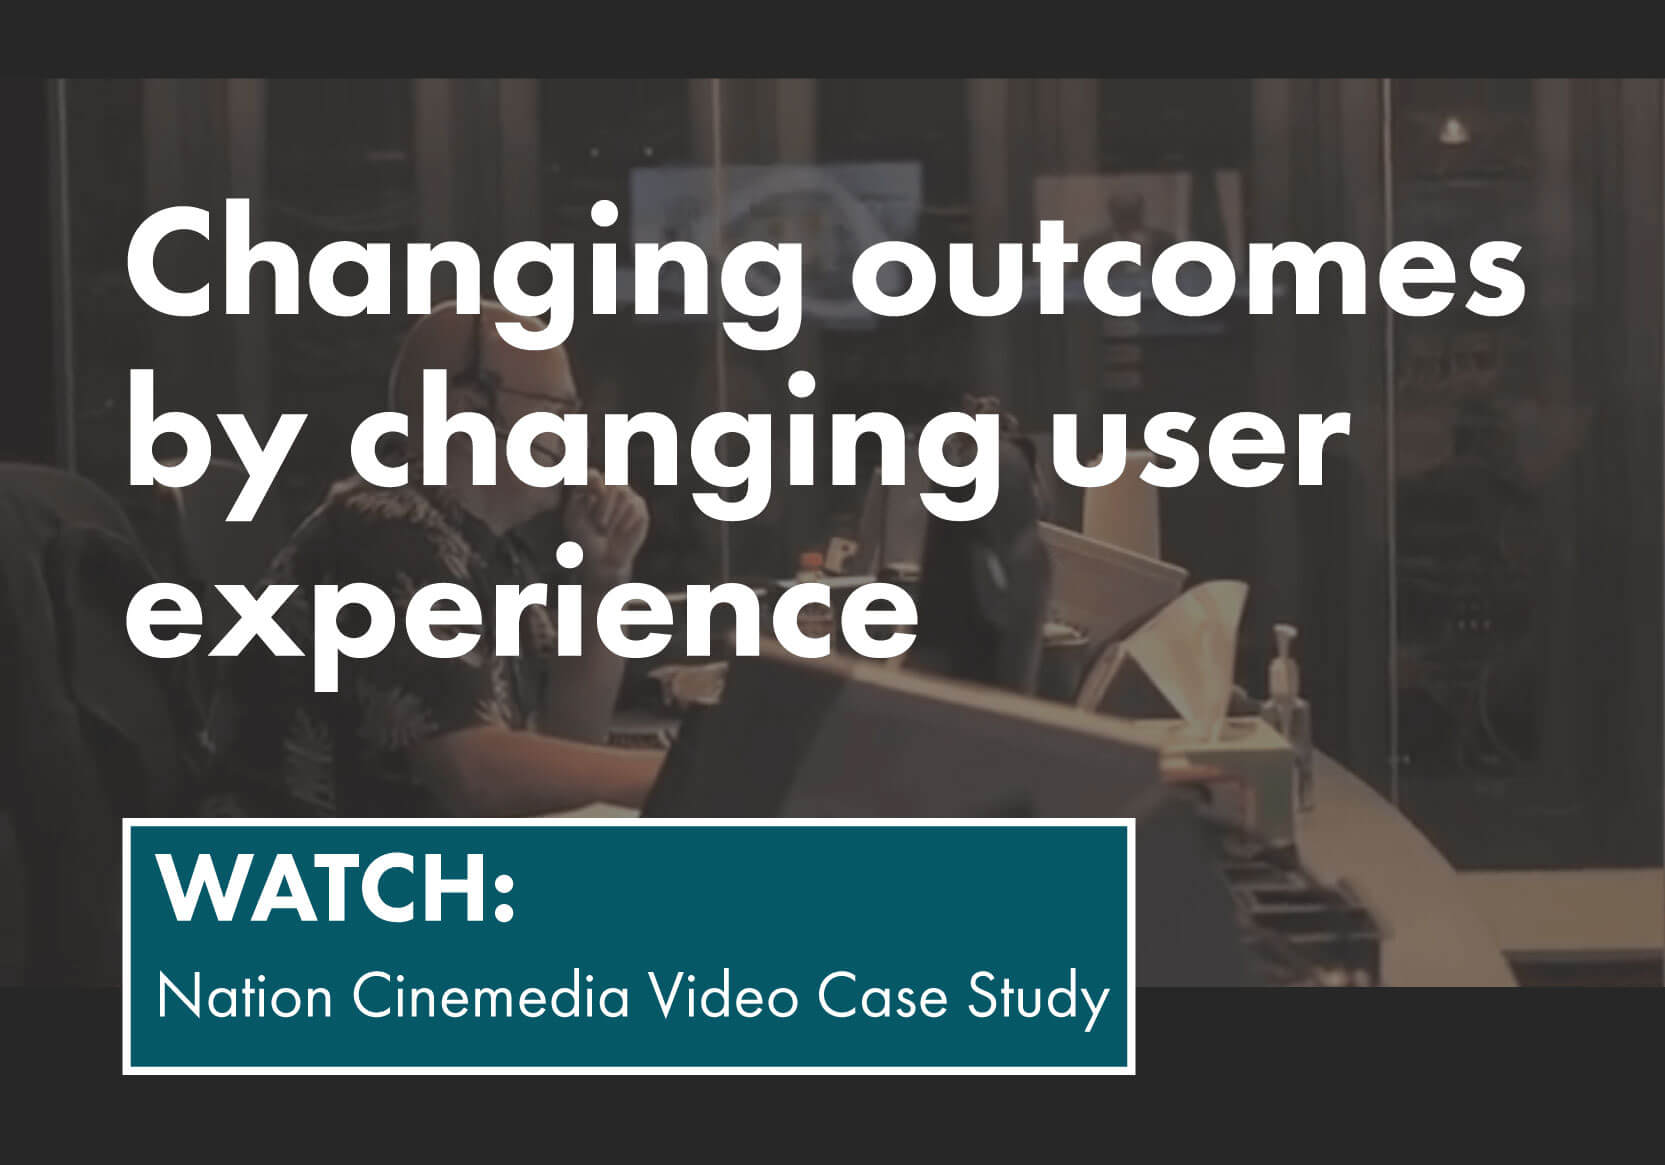 Learn how to change outcomes by chaning user experience. Watch Nation Cinemedia Video Case Study.